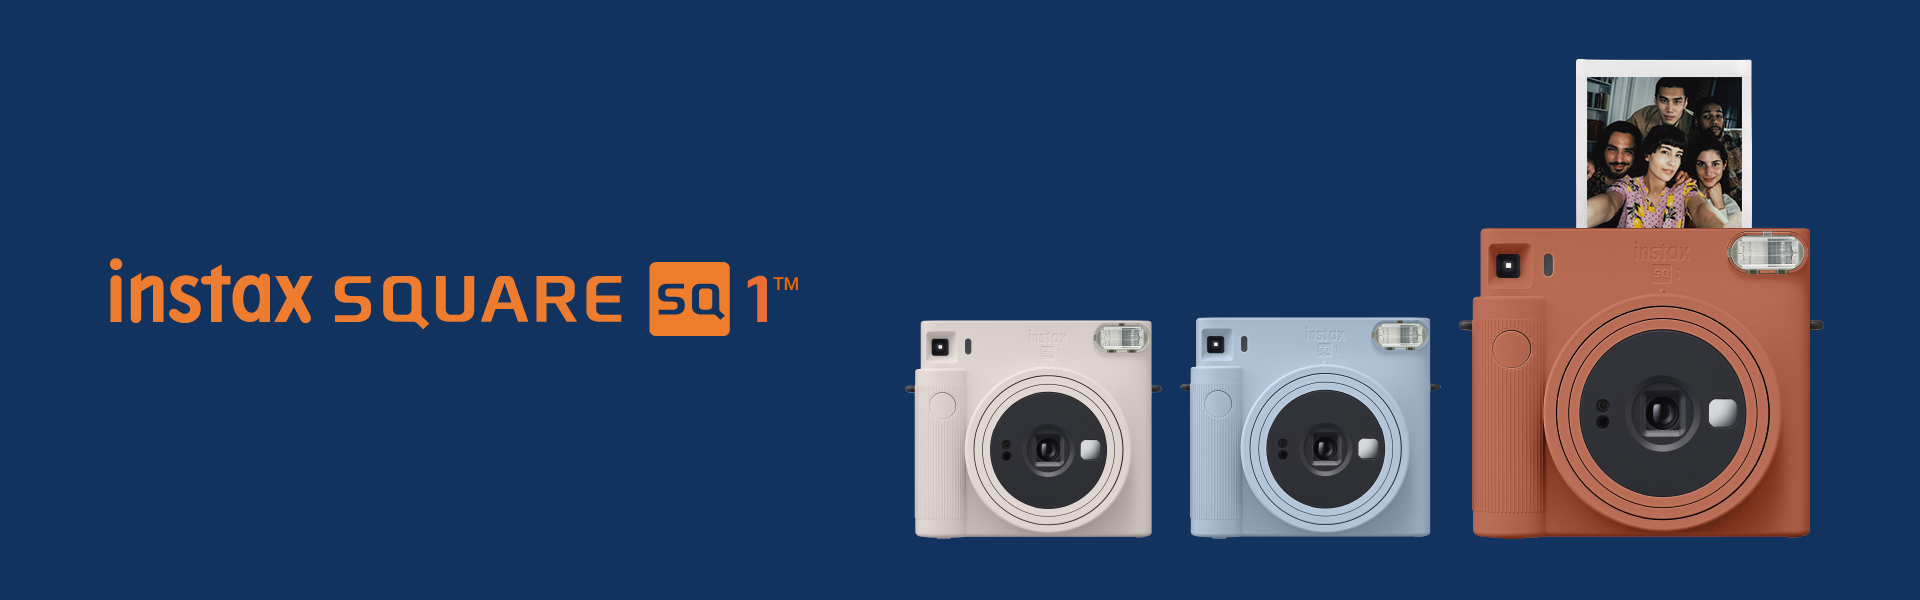 [image] INSTAX SQUARE SQ1 Banner